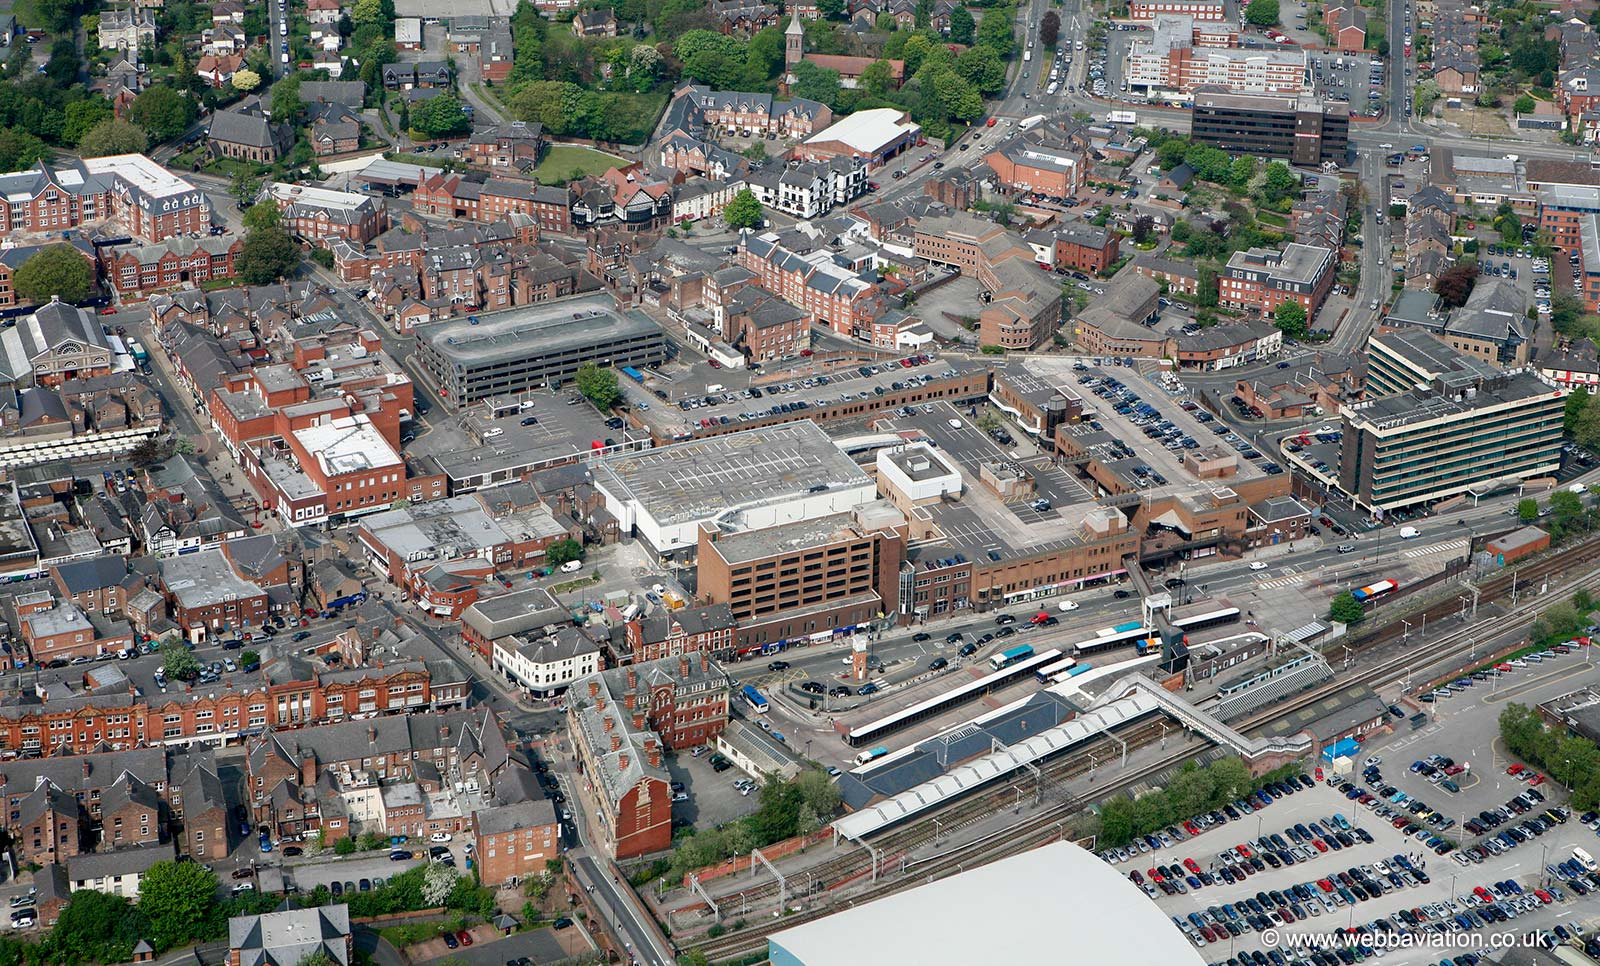 Altrincham Cheshire, from the air